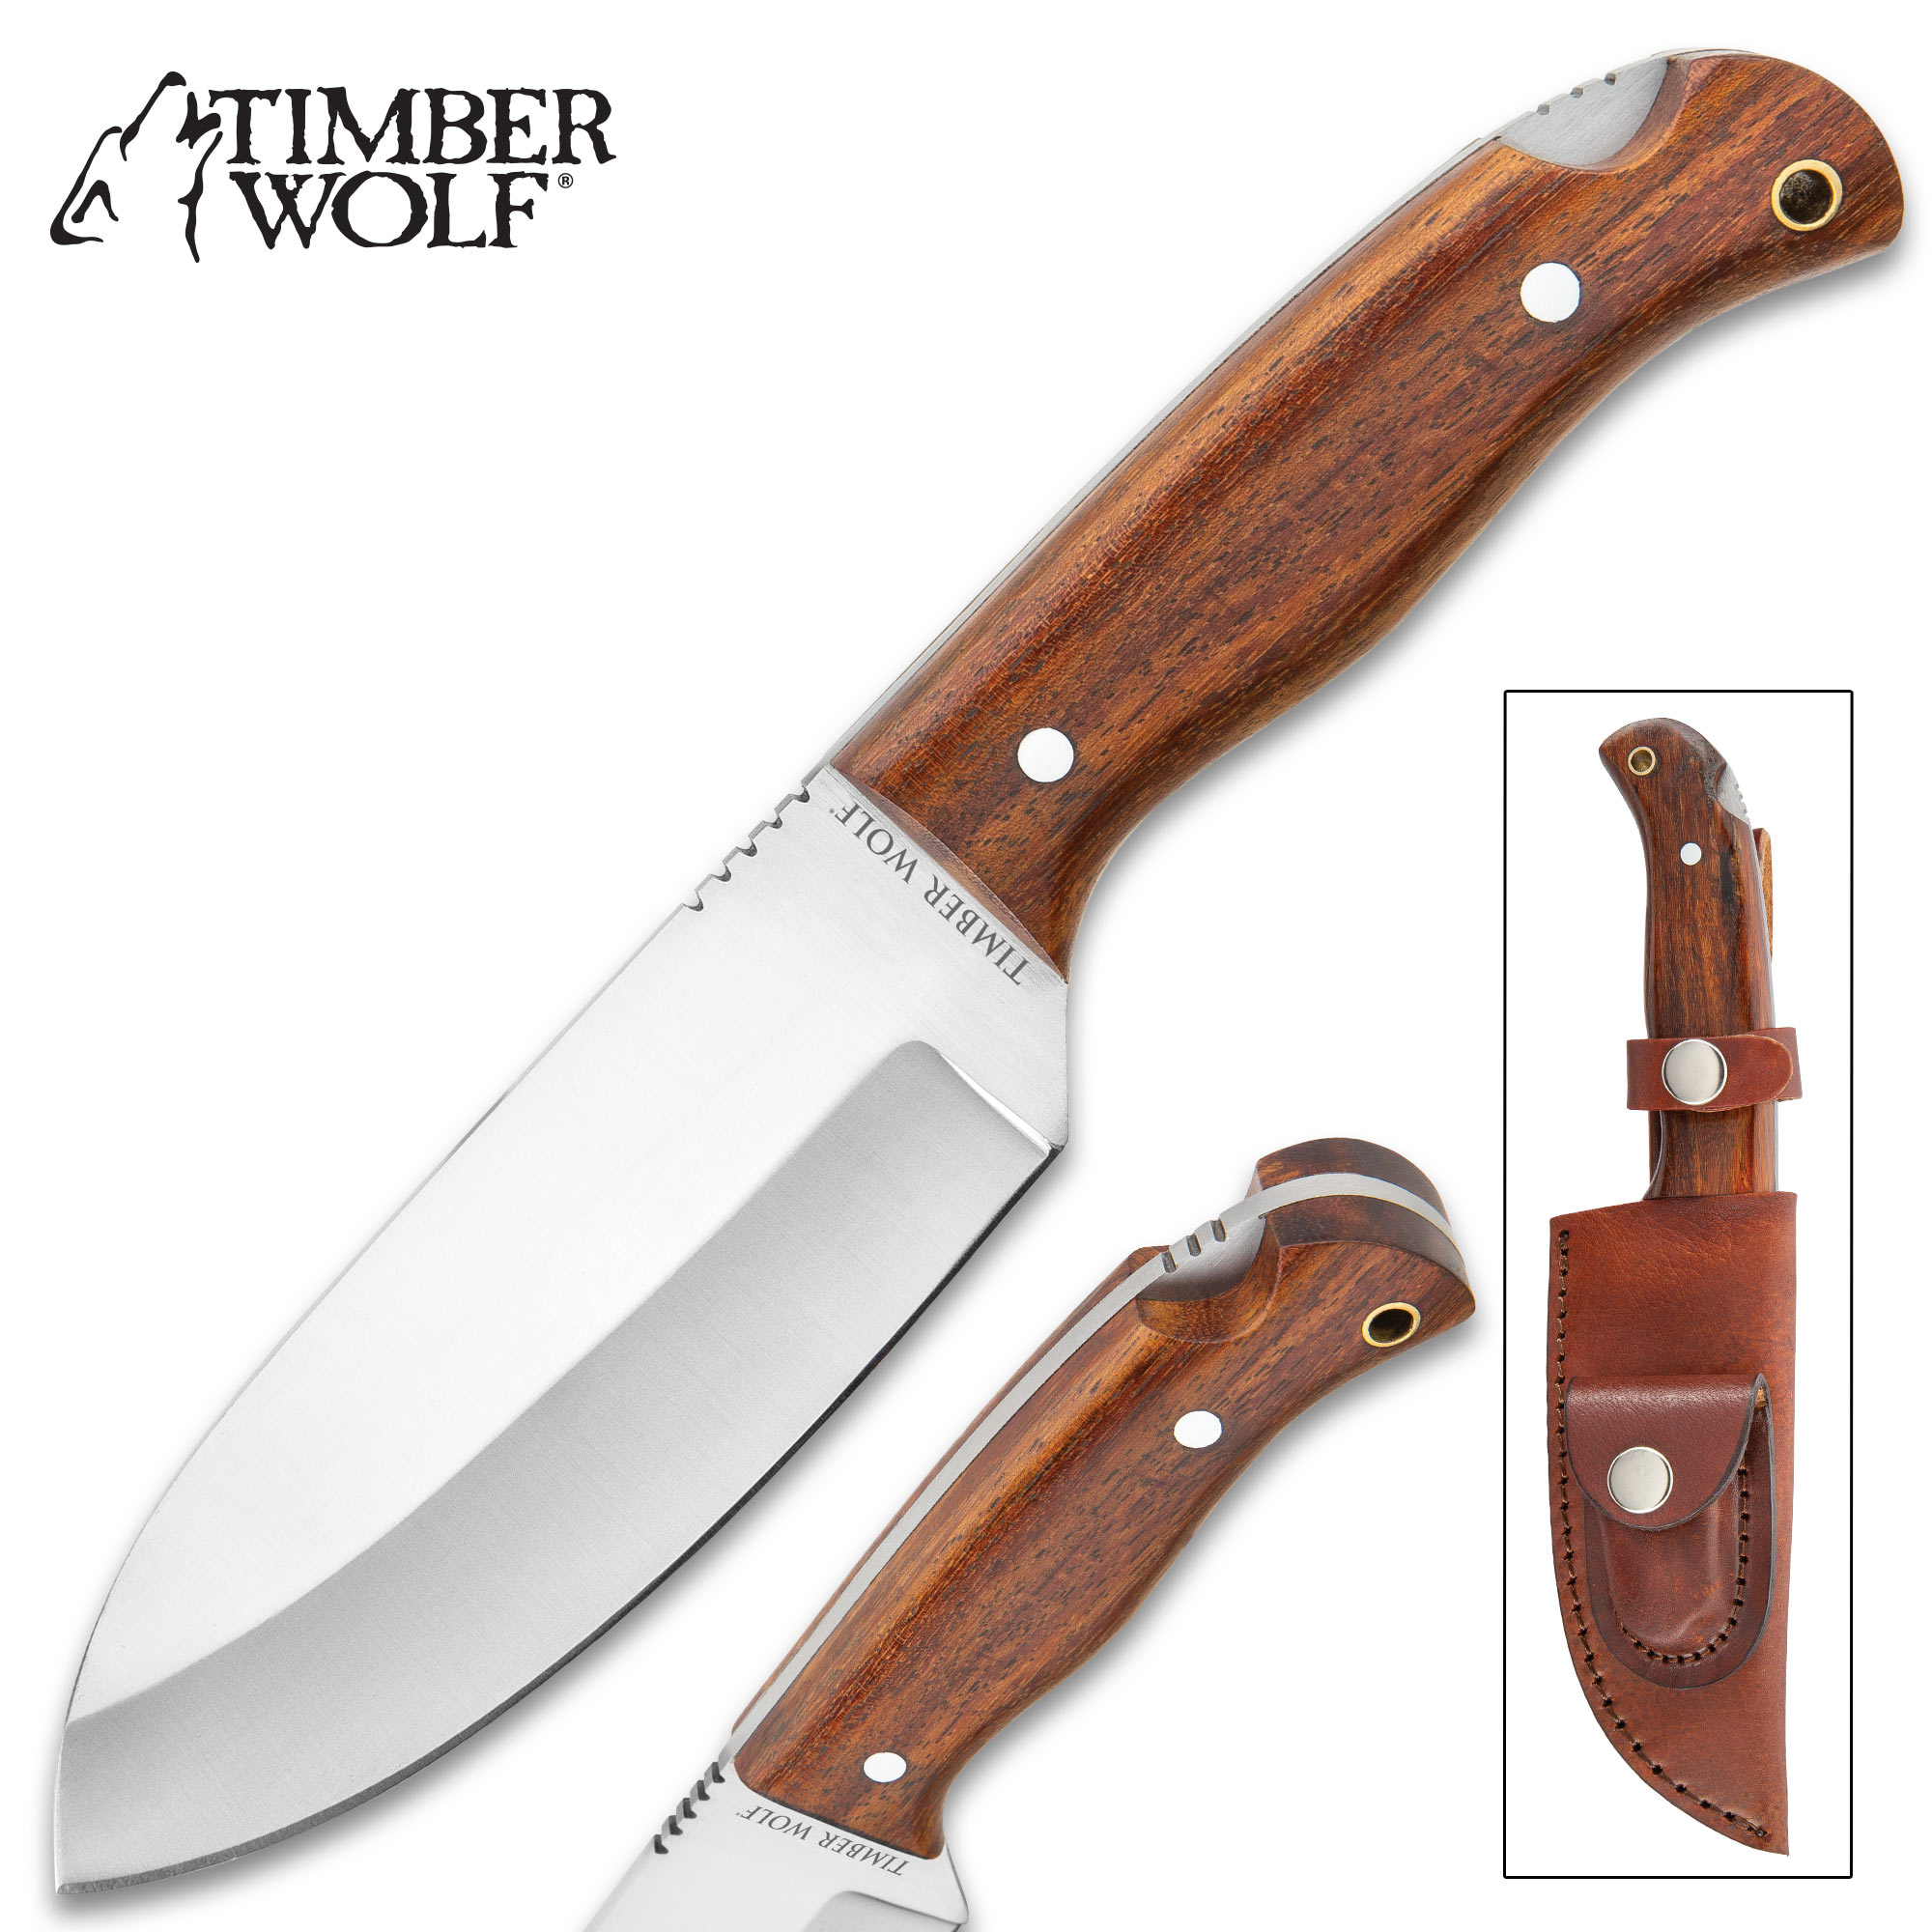 """Timber Wolf All-Terrain Knife With Sheath - Carbon Steel Blade, Full-Tang,  Wooden Handle, Stainless Steel Pins, Lanyard Hole - Length 9 1/4"""""""